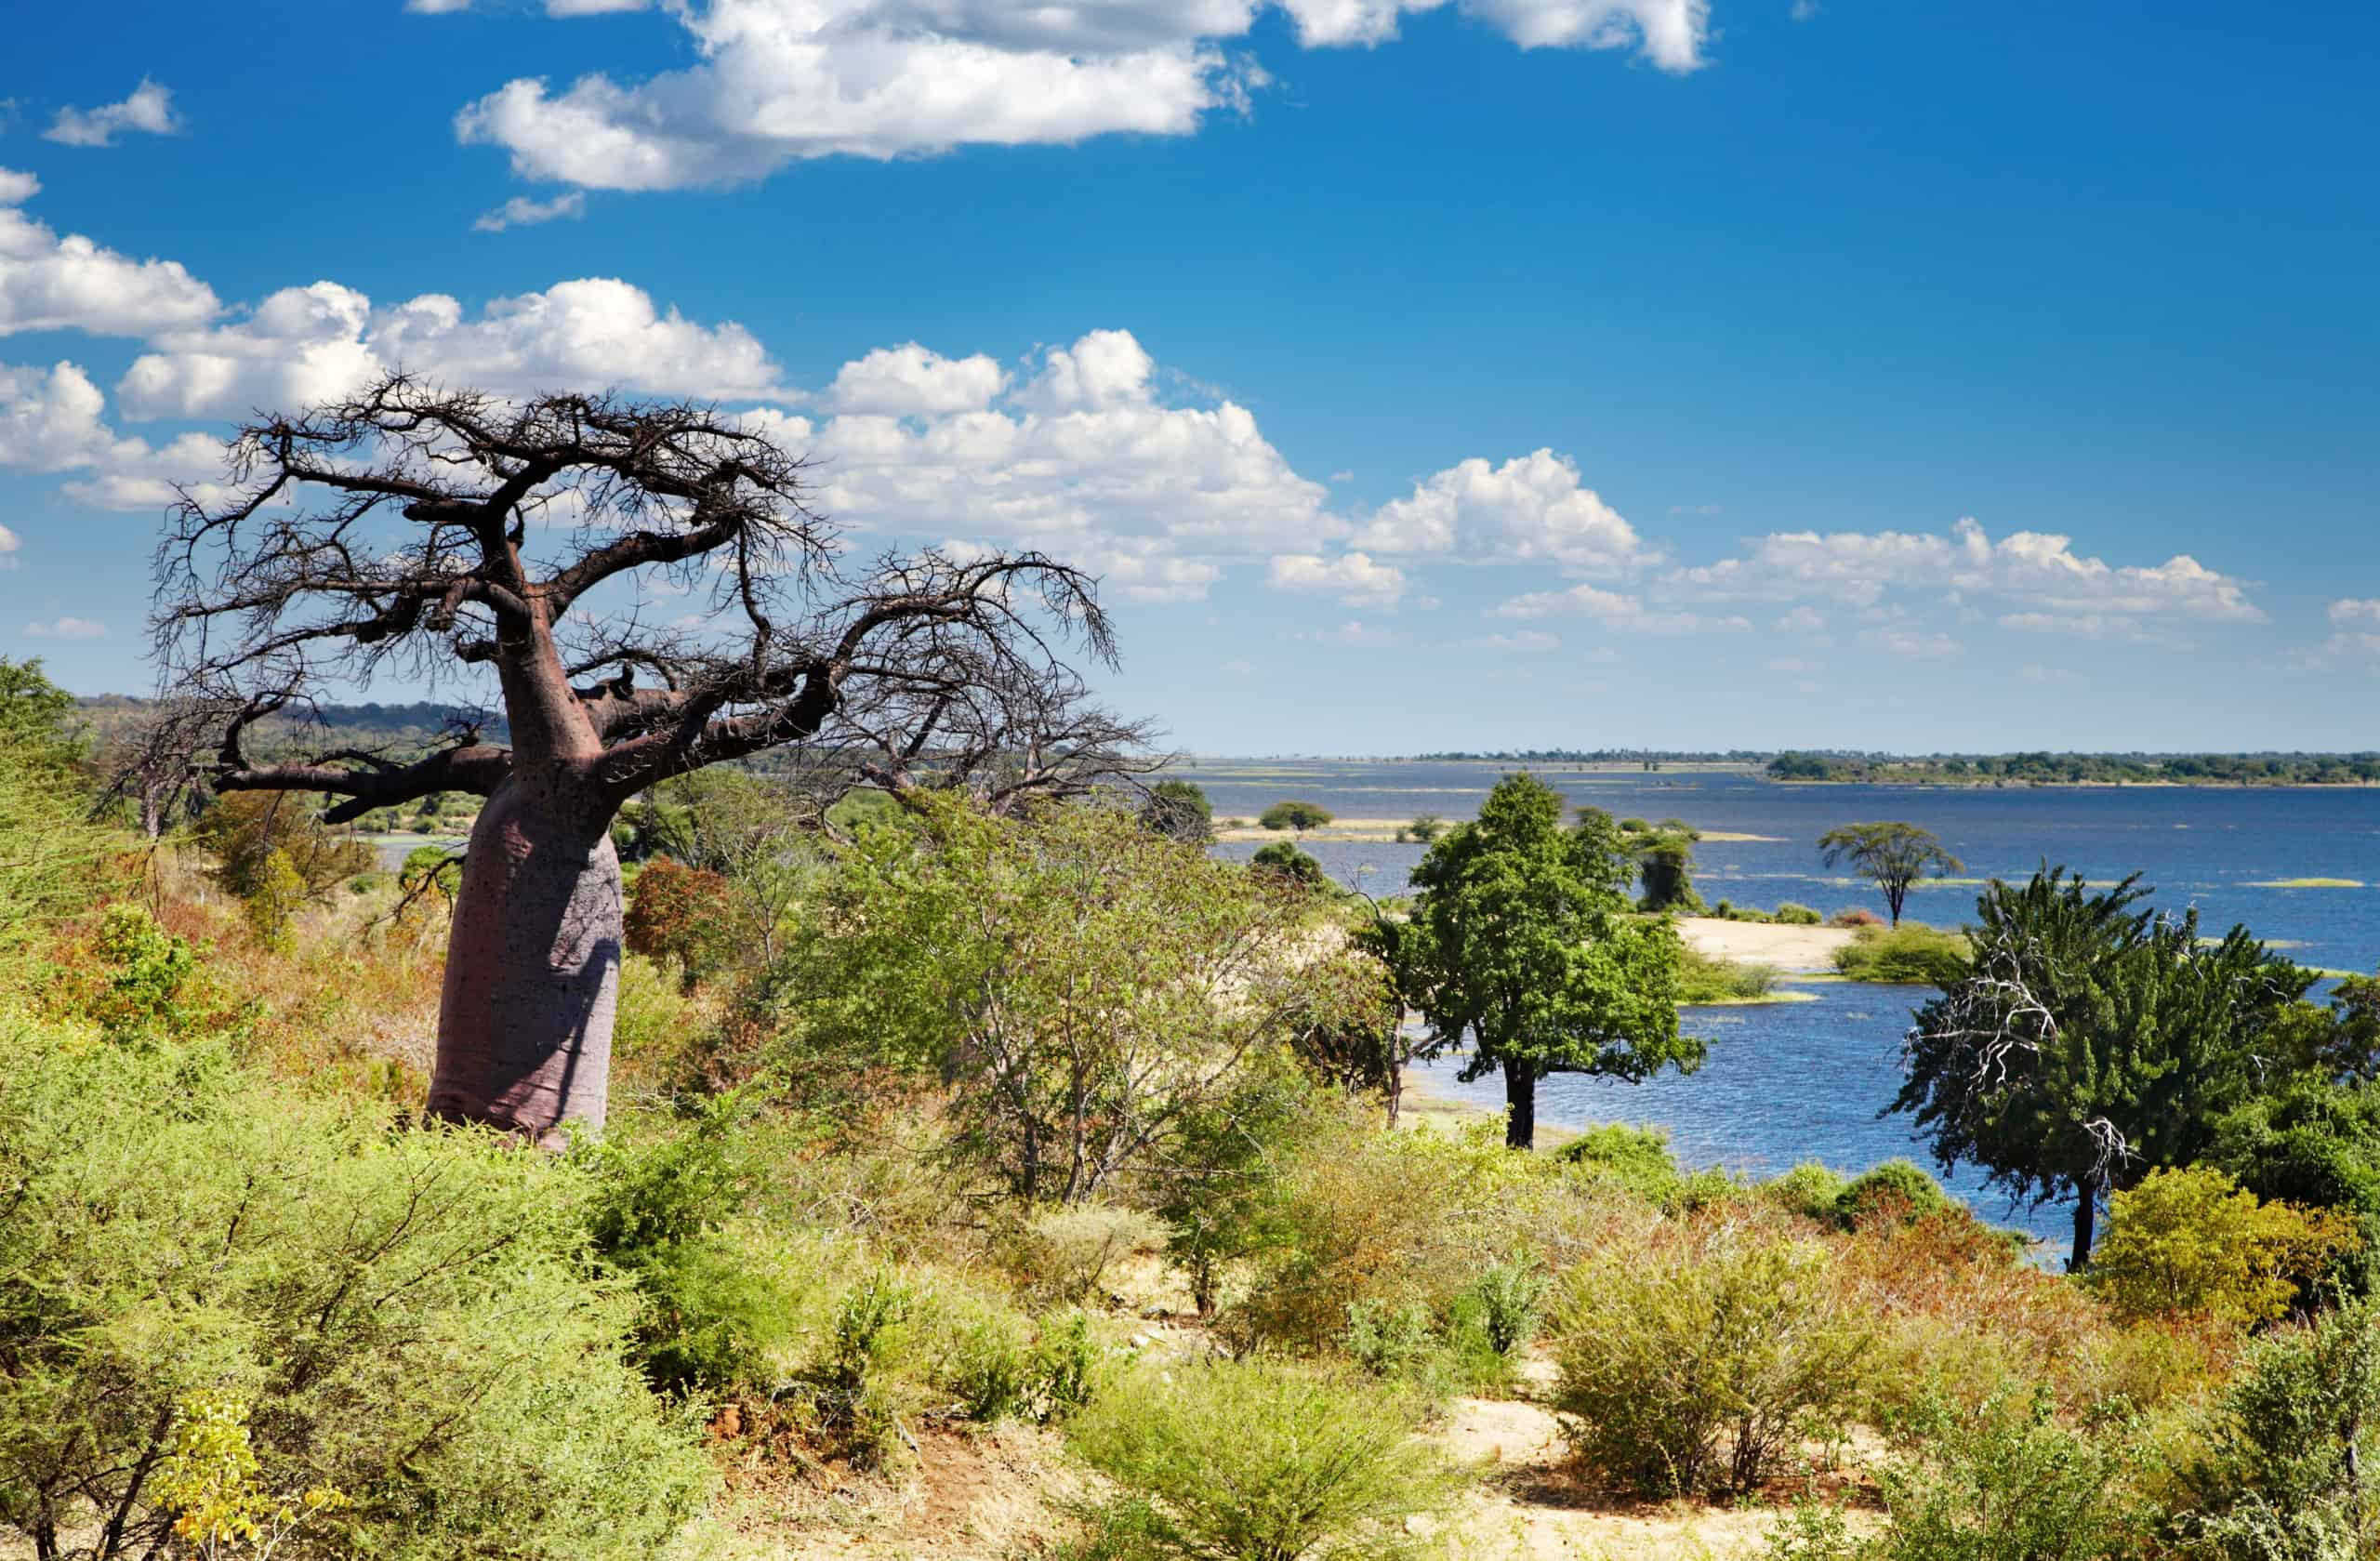 Ten interesting facts about Botswana